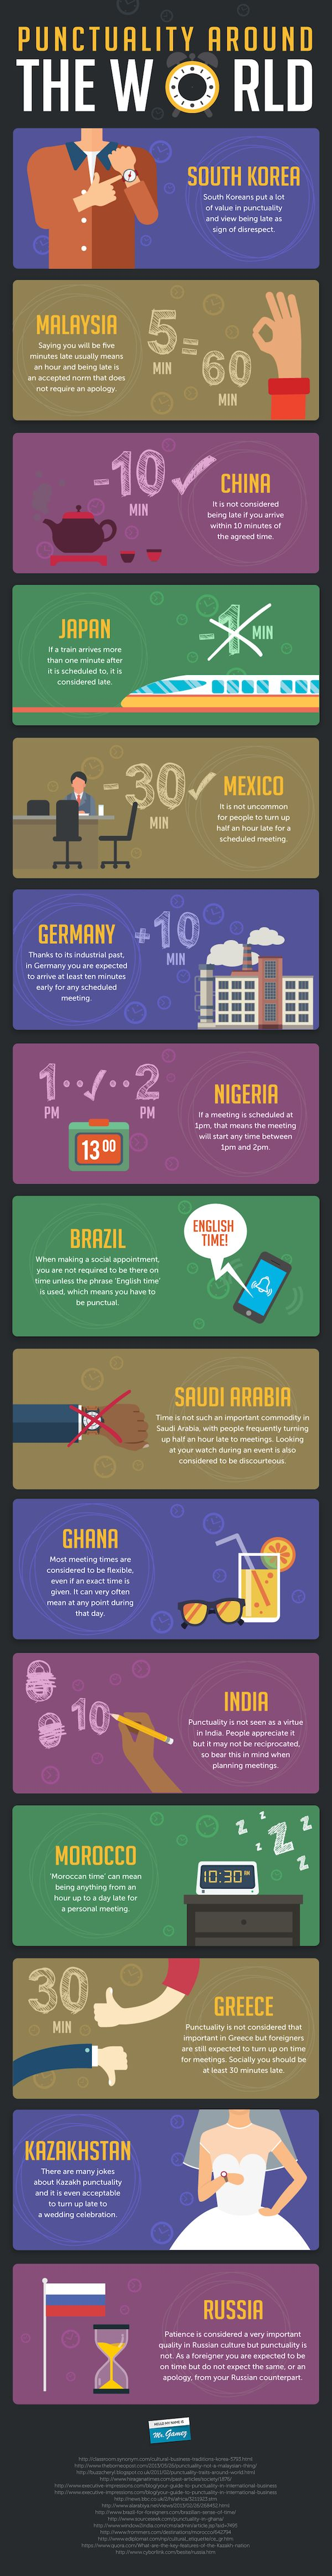 Infographic: What Punctuality Means In Different Countries - DesignTAXI.com